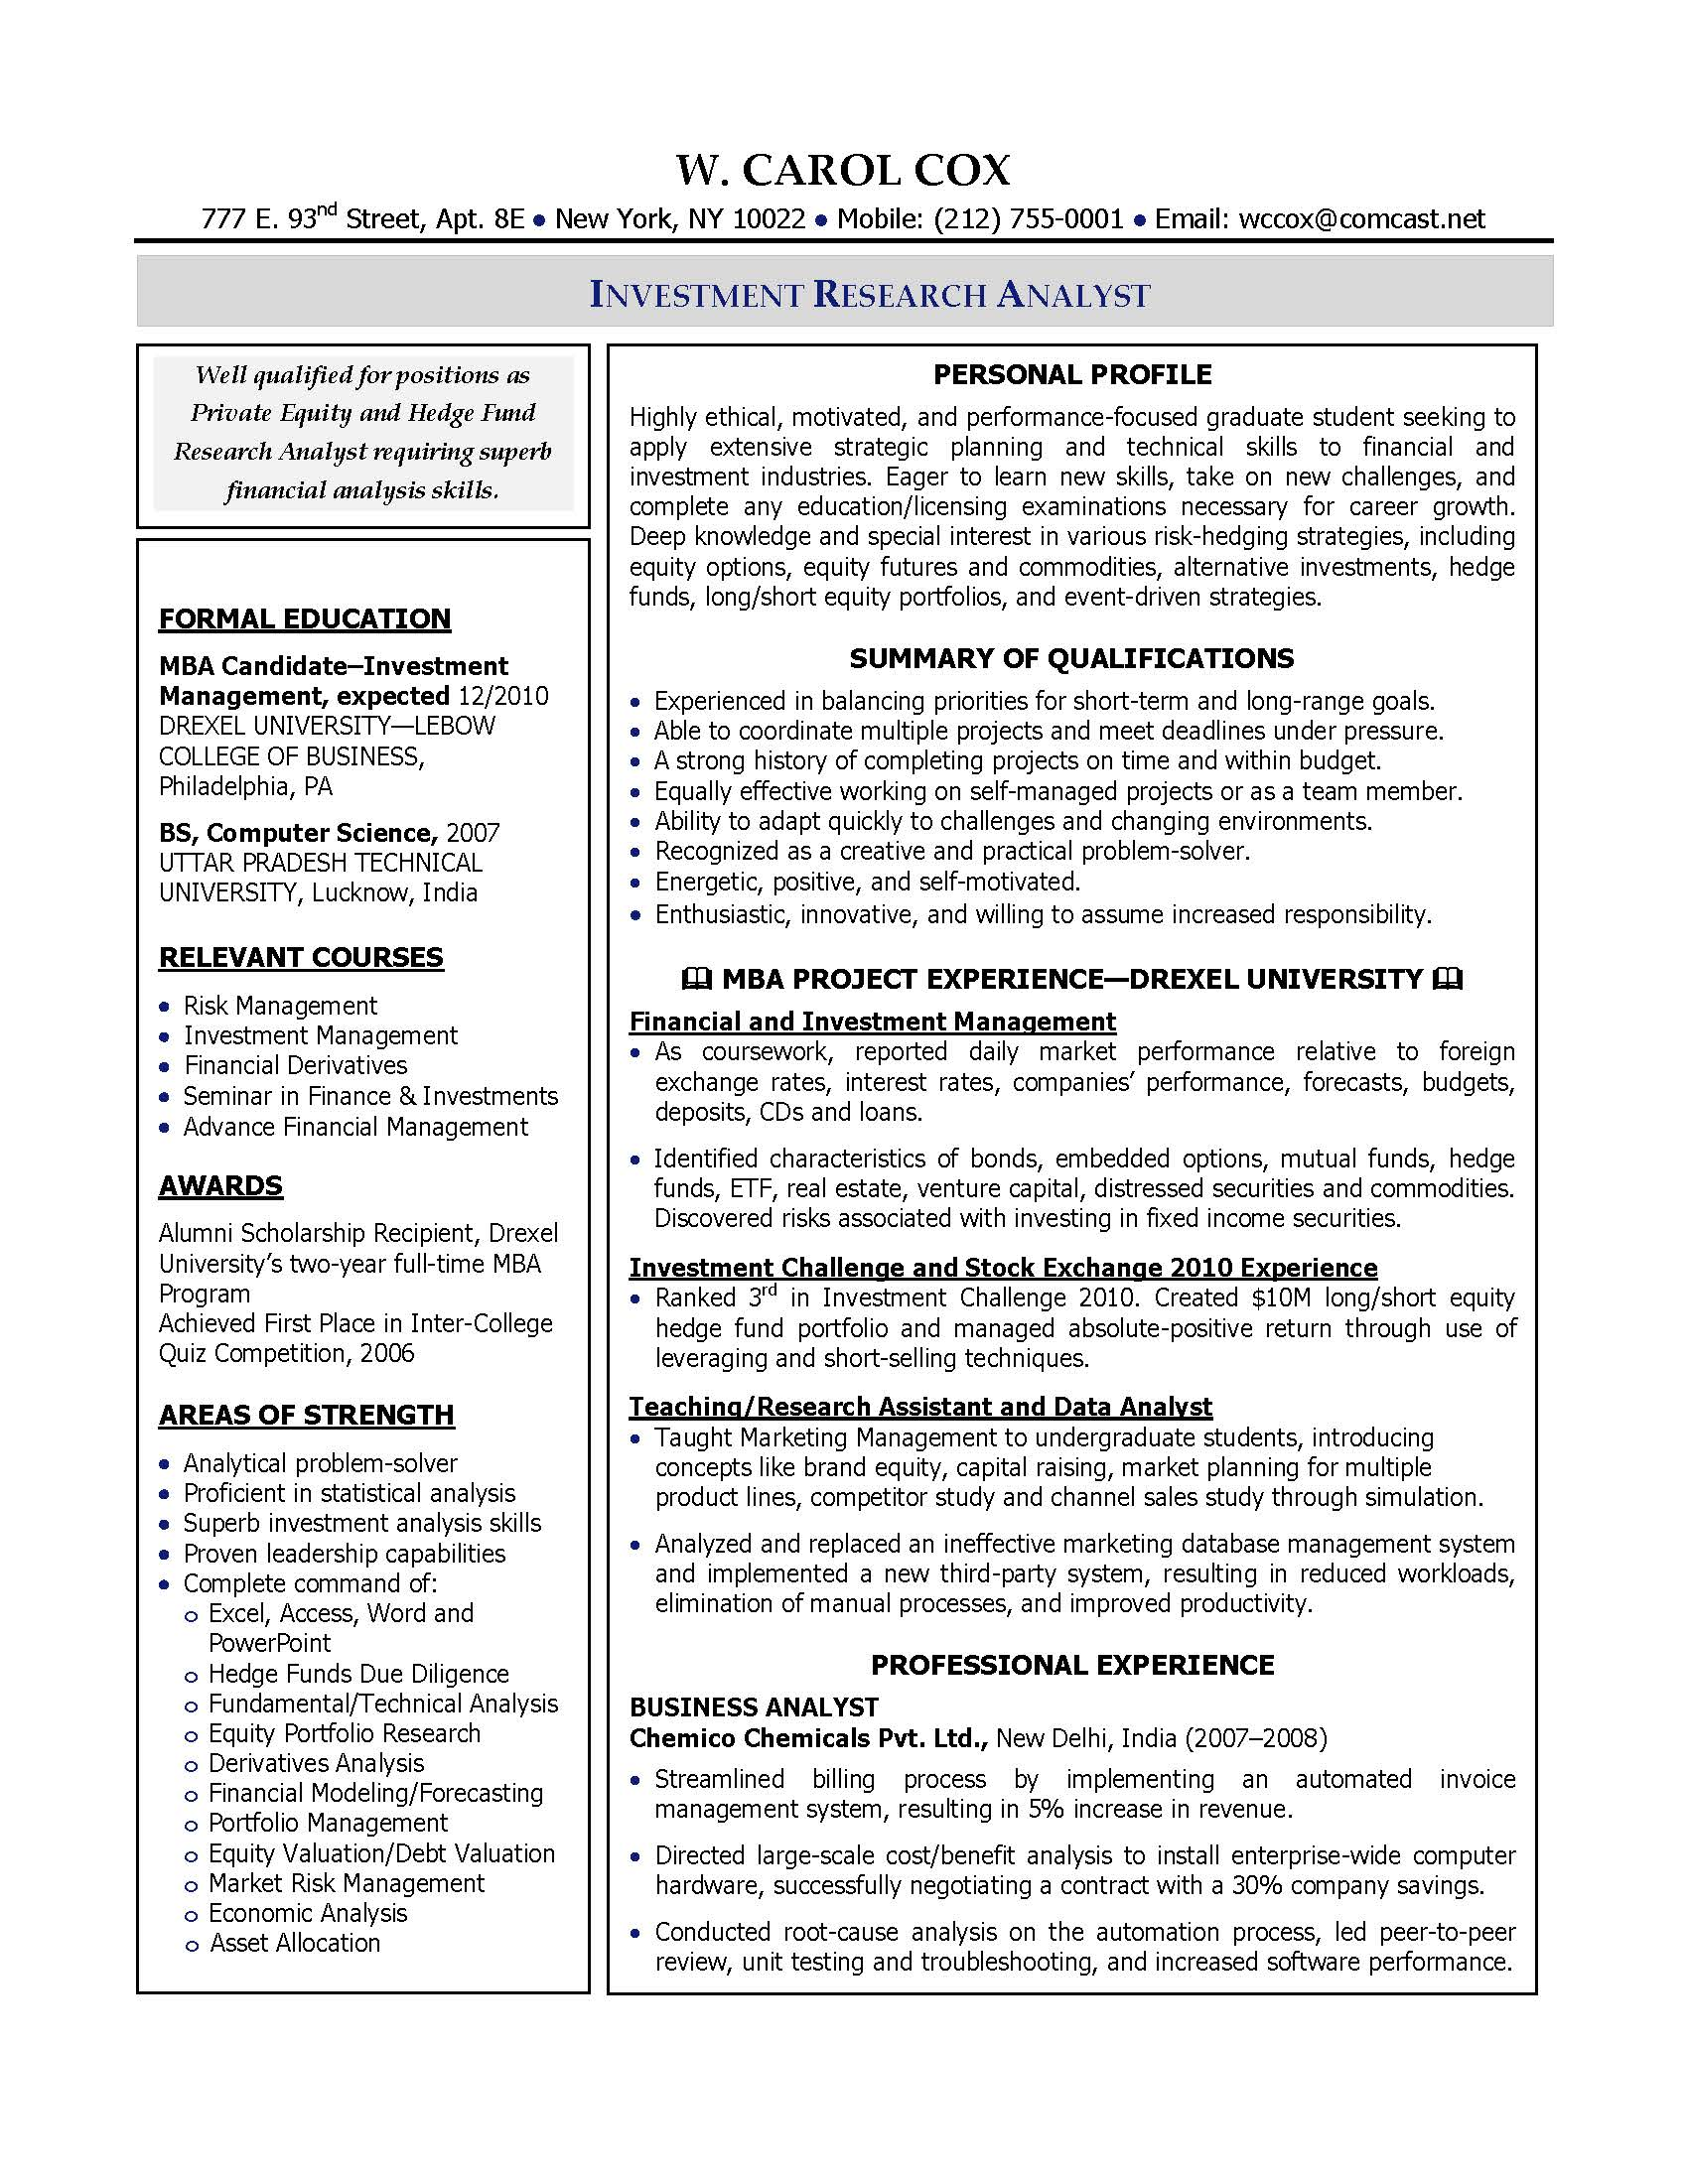 Investment Research Analyst Resume Sample, Provided By Elite Resume Writing  Services  Resume Writing Business